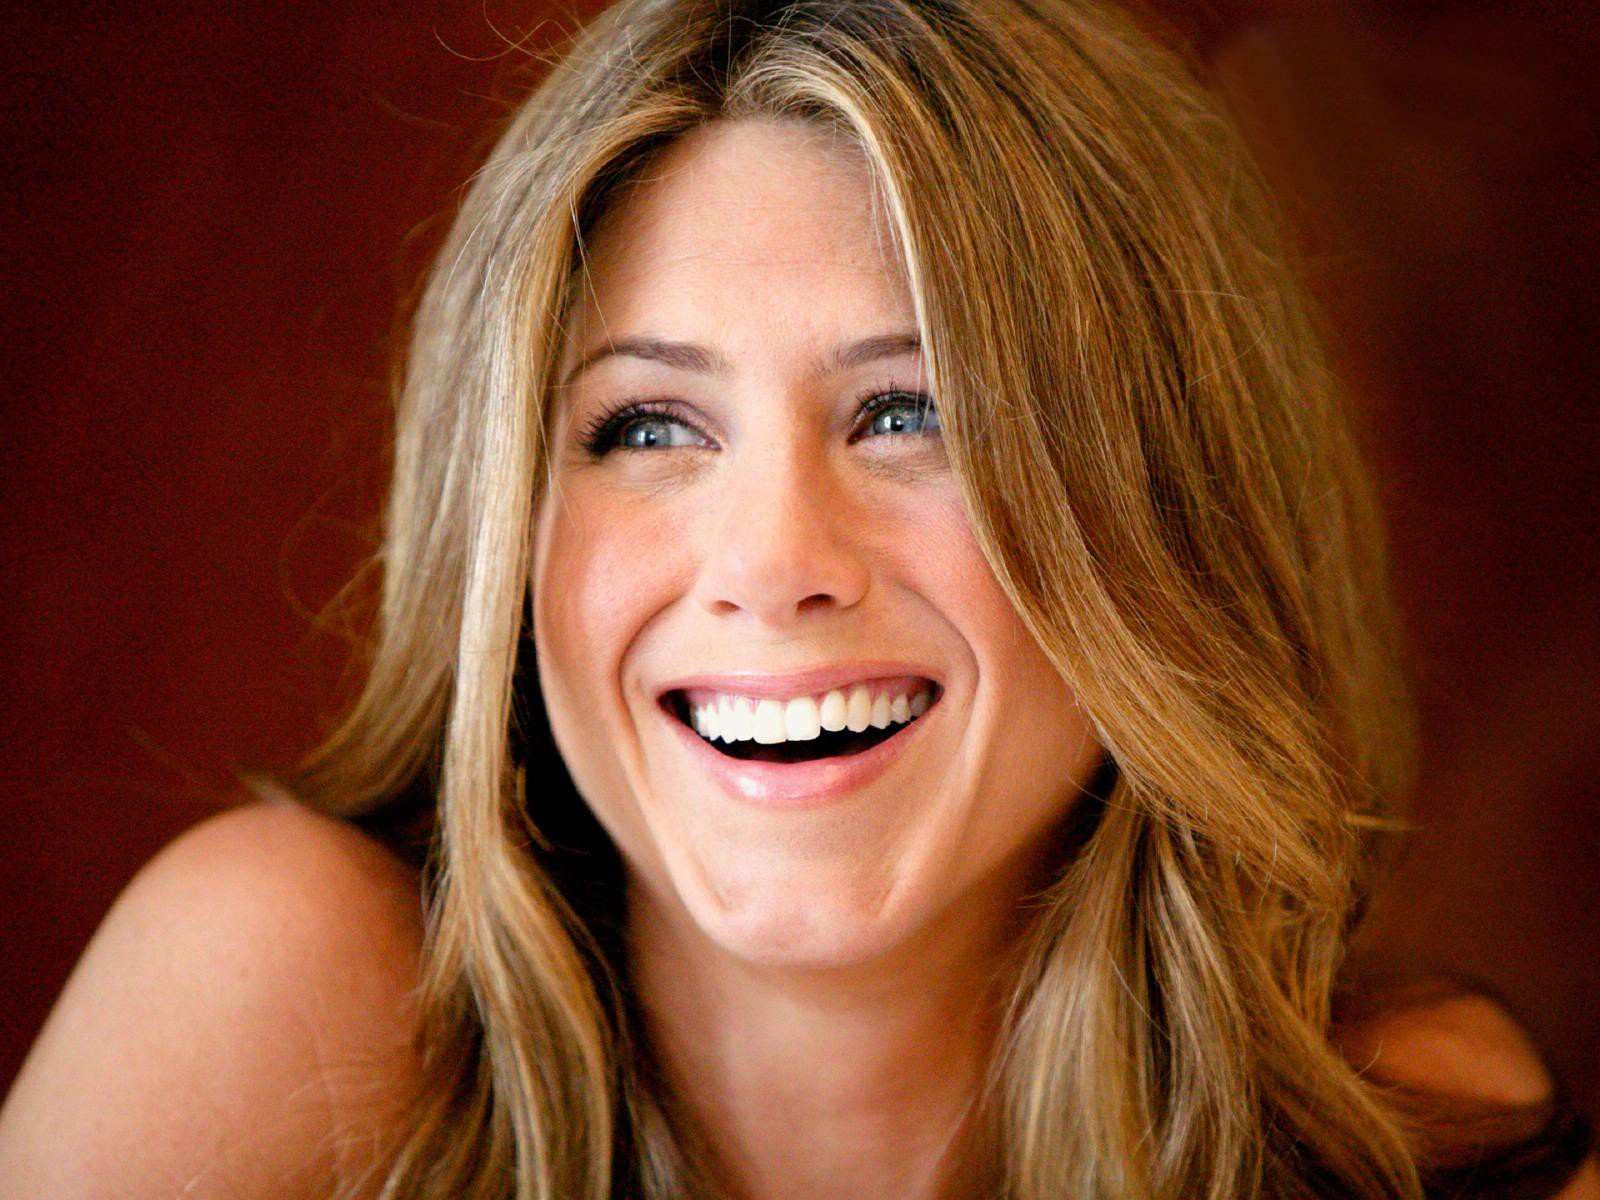 Jennifer Aniston: Jennifer Aniston HD Wallpapers For Desktop Download